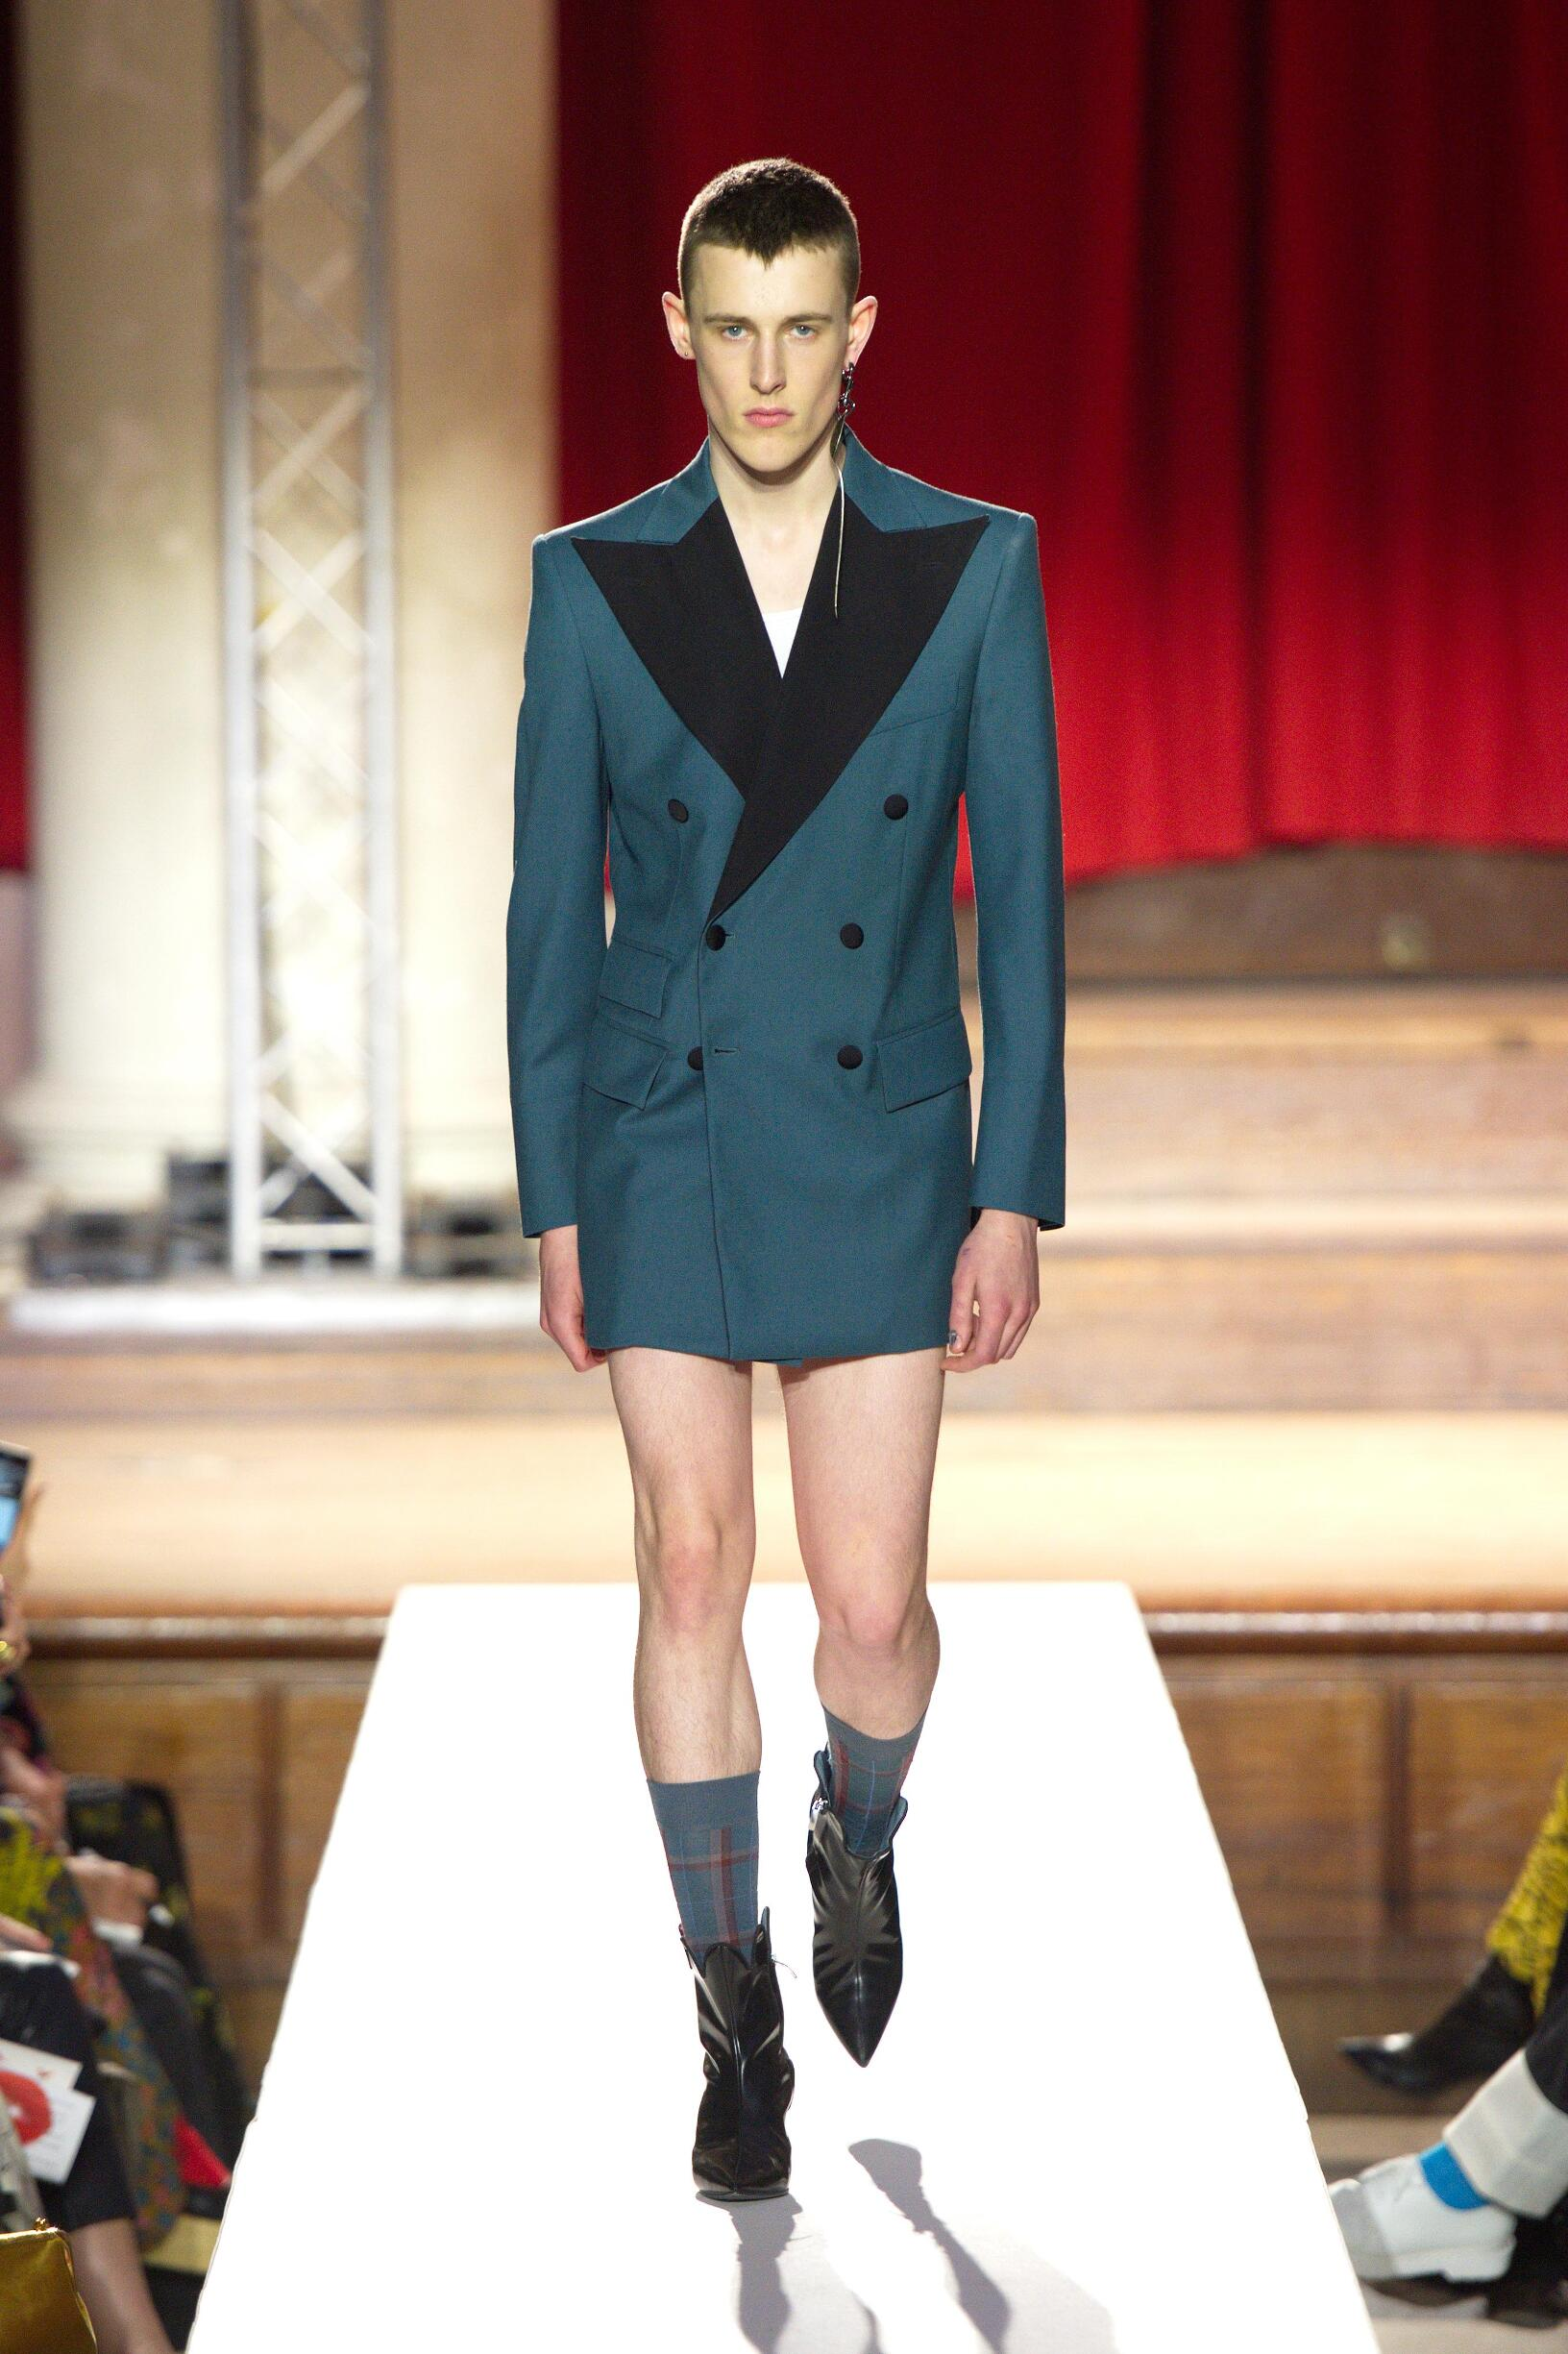 Vivienne Westwood Fall Winter 2019 Mens Collection London Fashion Week